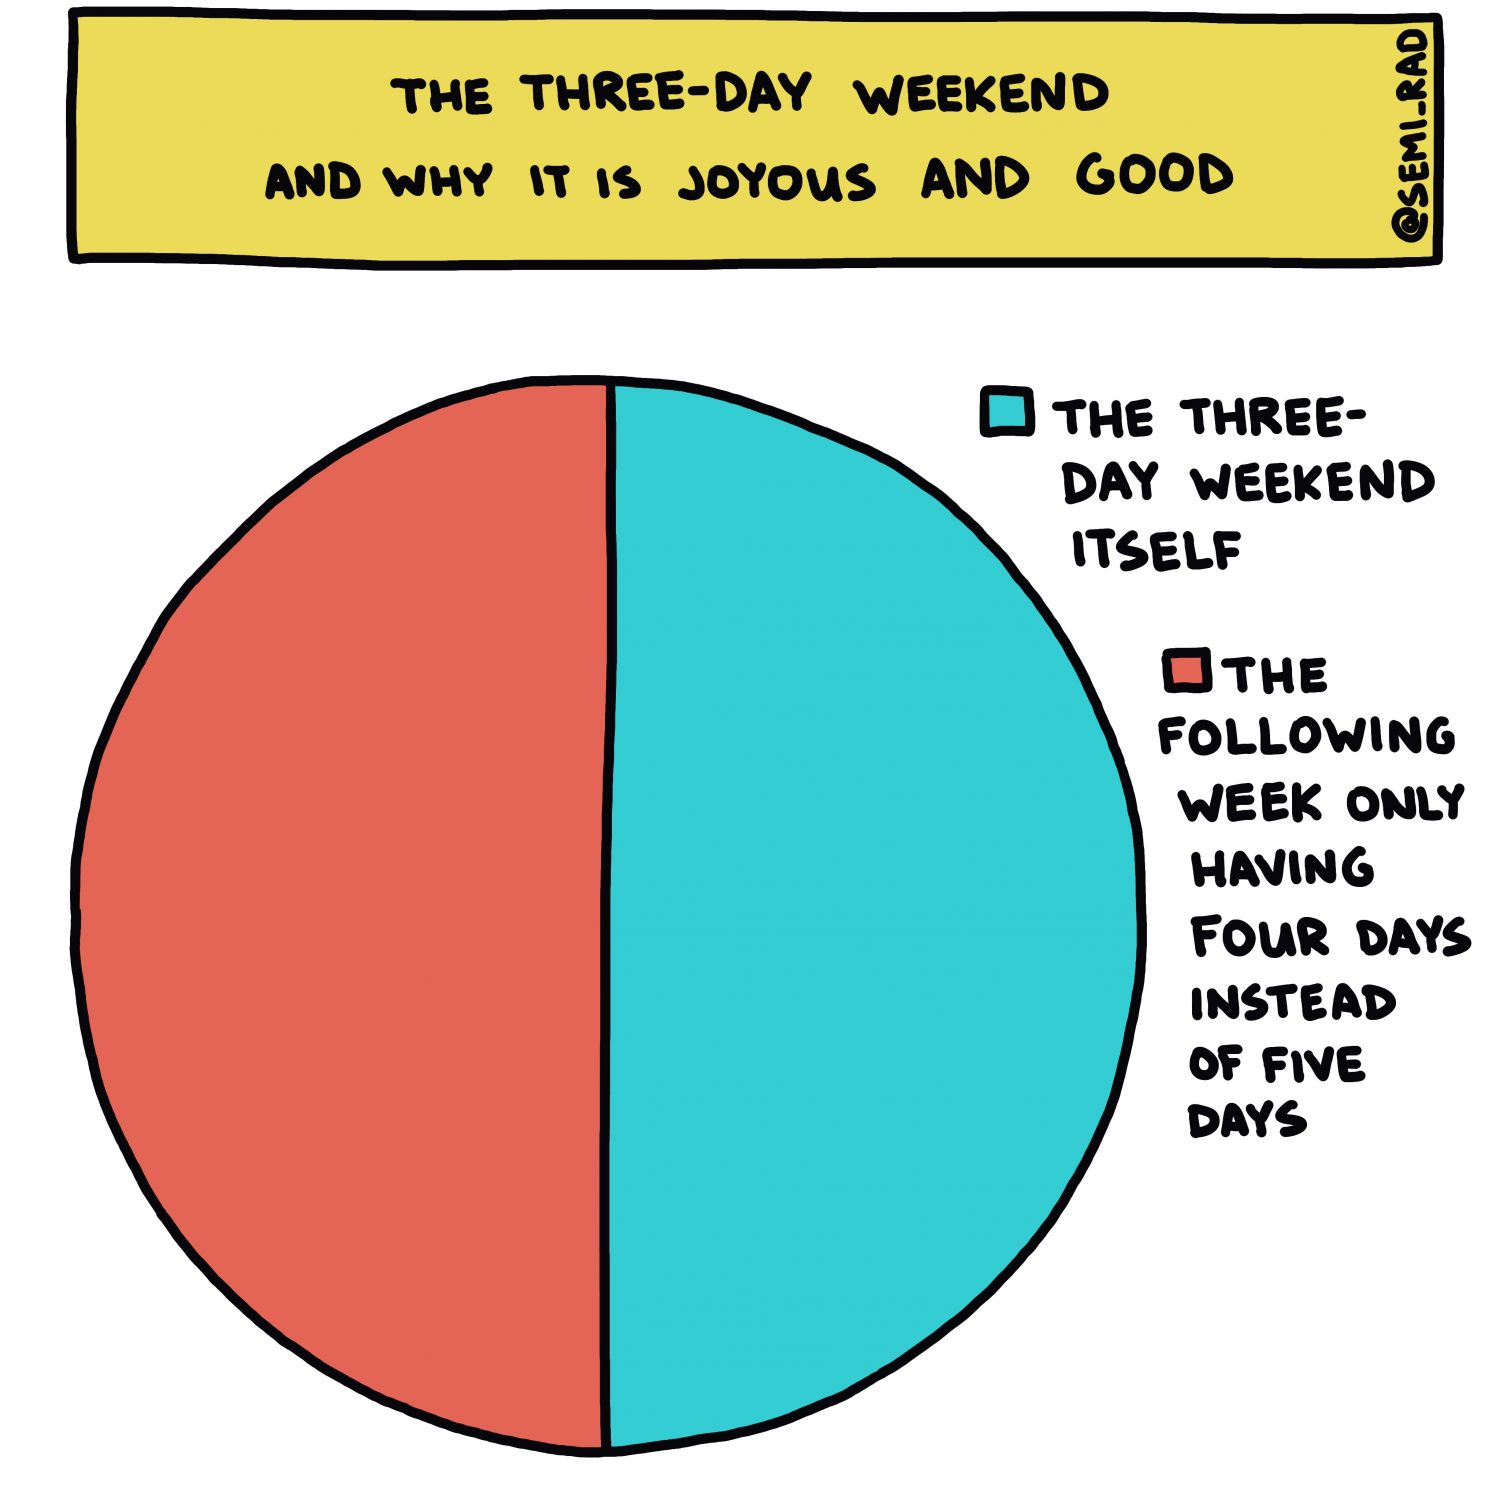 The Three-Day Weekend And Why It Is Joyous And Good